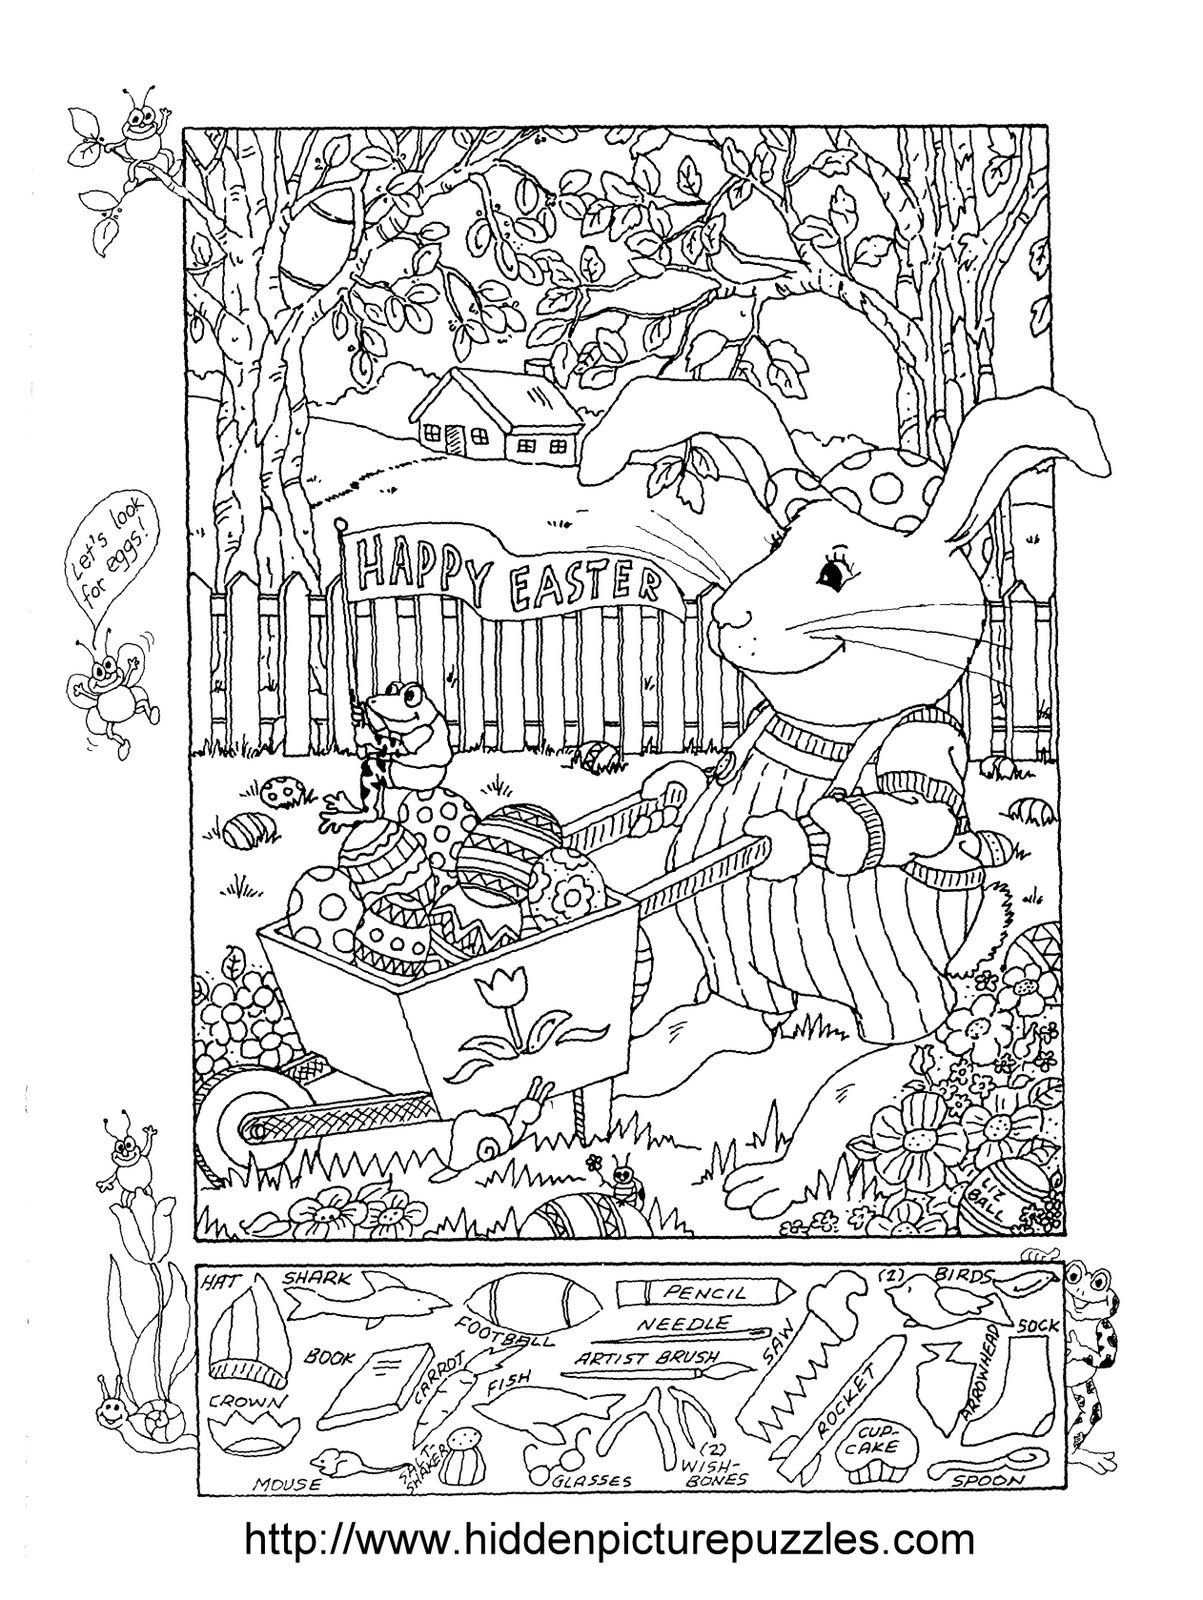 Easter Hidden Picture Puzzle and Coloring Page | Puzzles-Logic ...